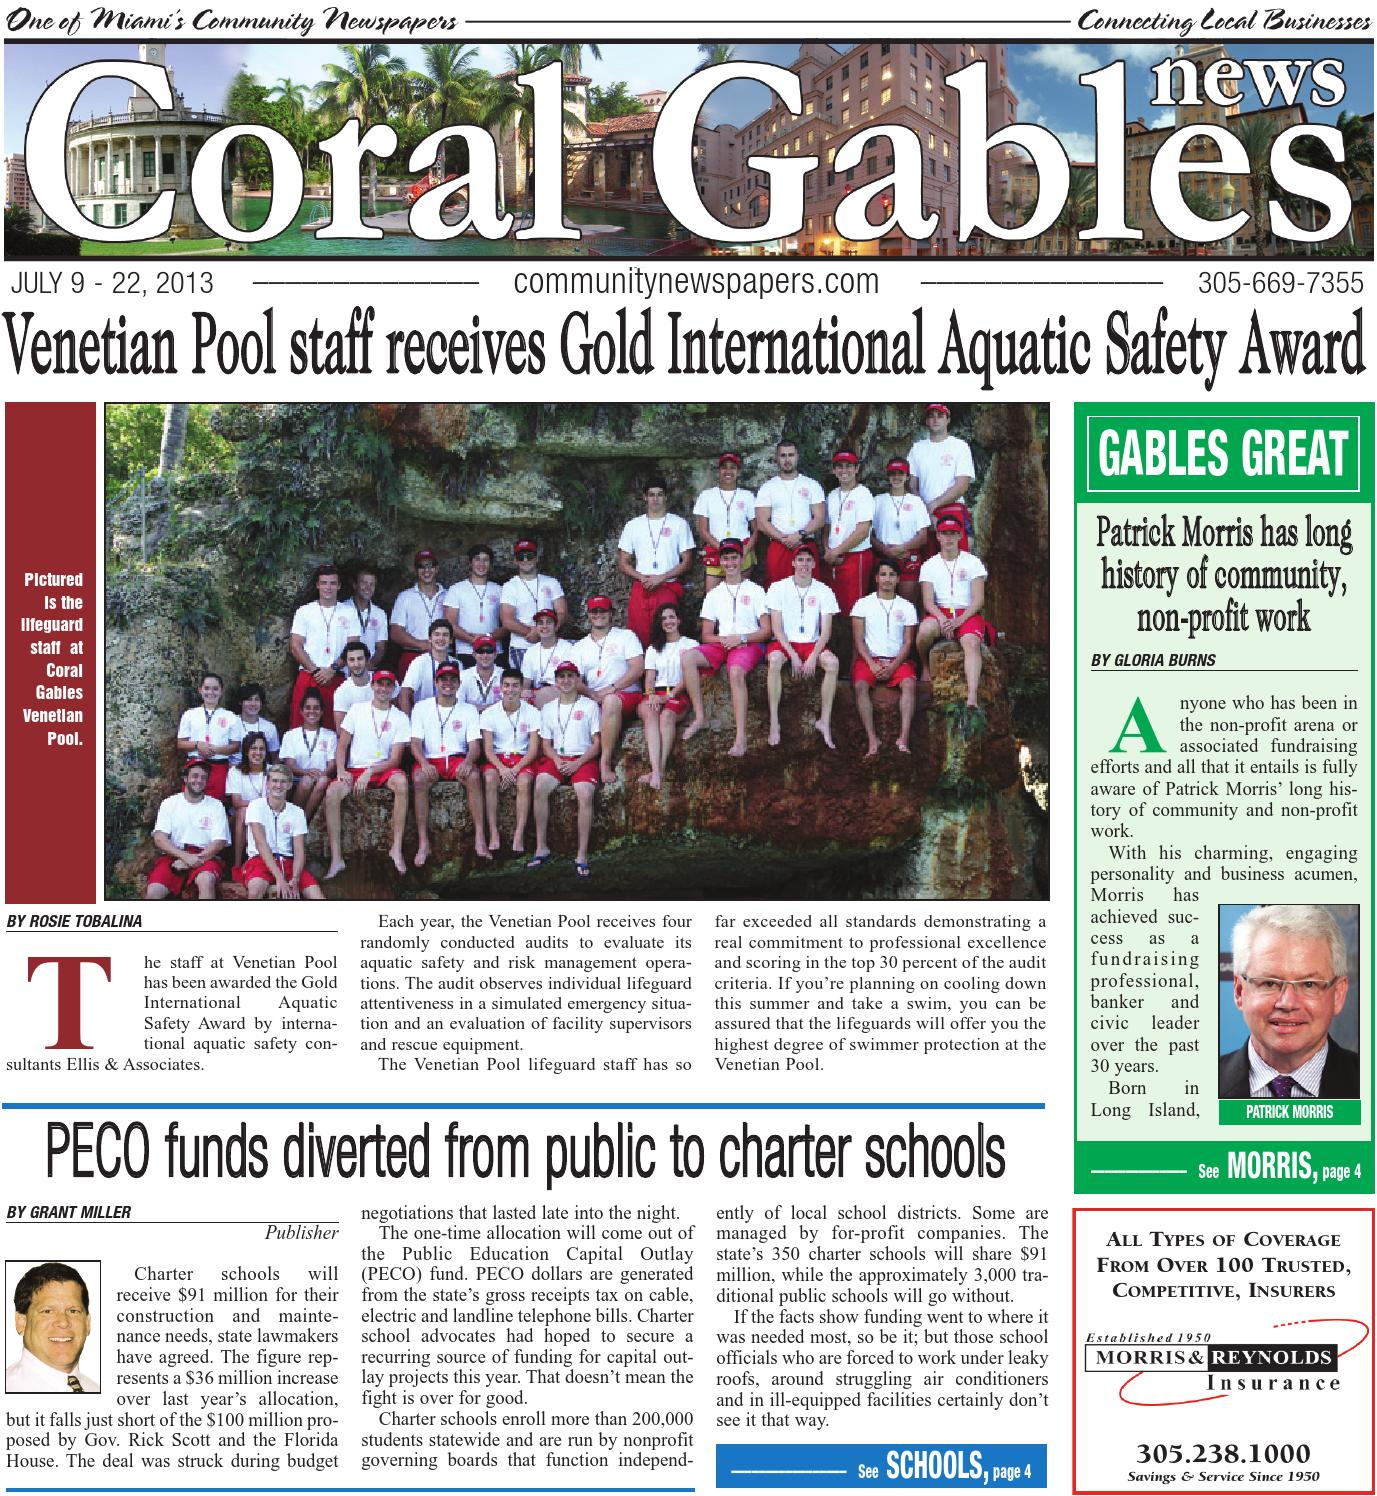 Gables Of St Morris coral gables news 7.9.2013community newspapers - issuu